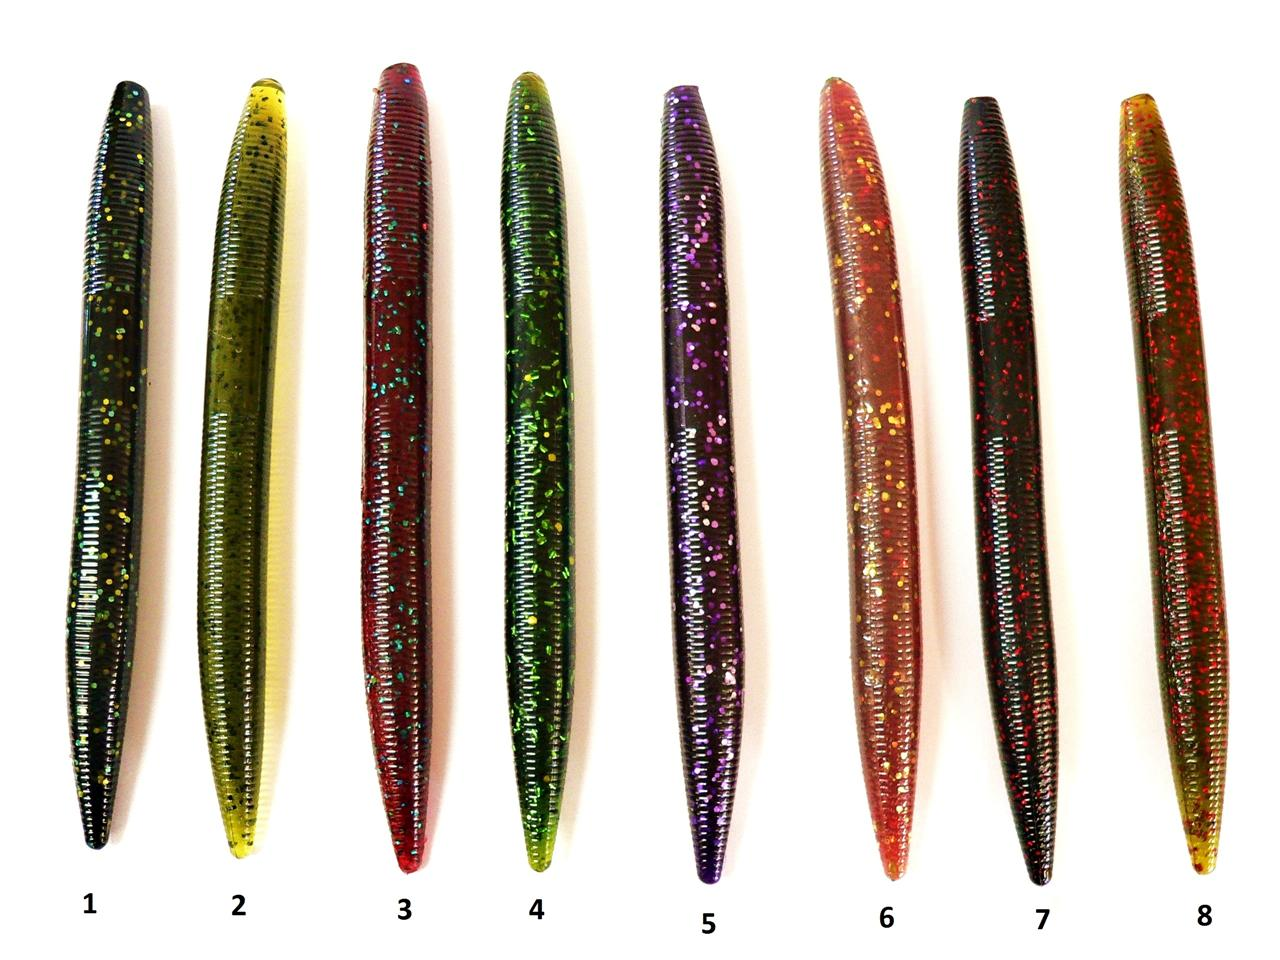 bogbaits 6 inch fat senko style stick baits stix lure bass